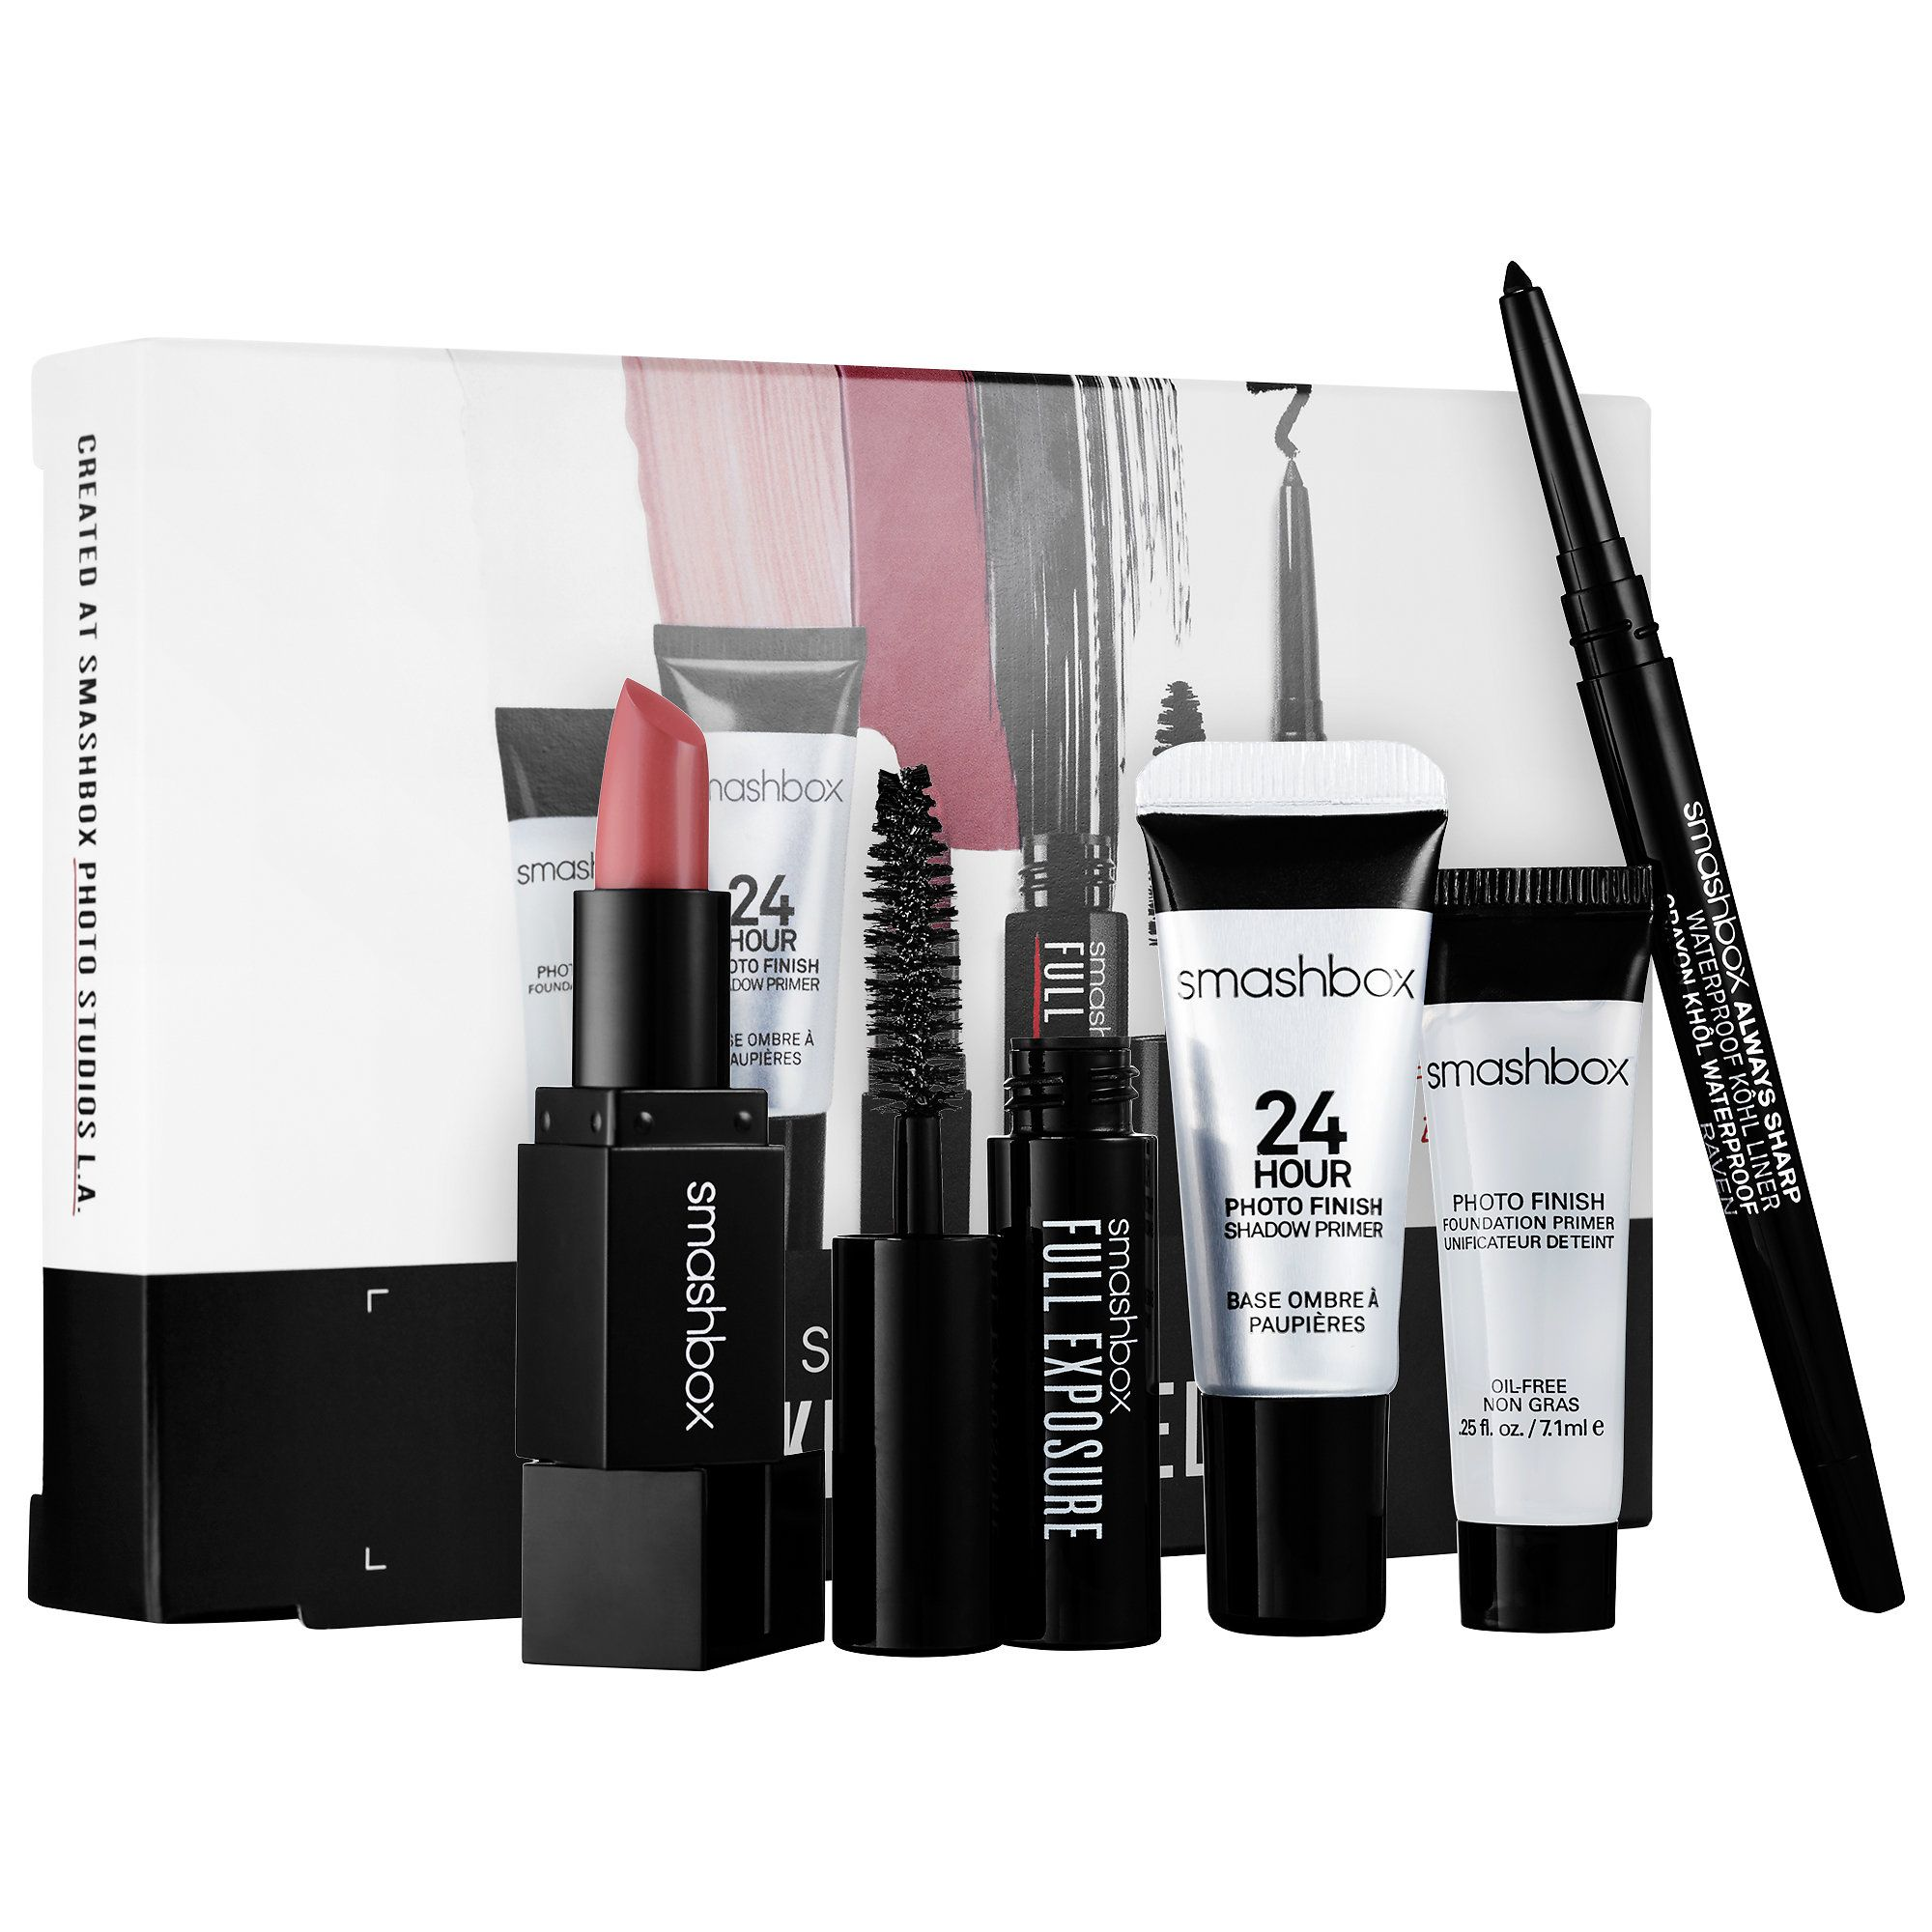 Shop Smashbox Try It Kit Bestsellers at Sephora. This